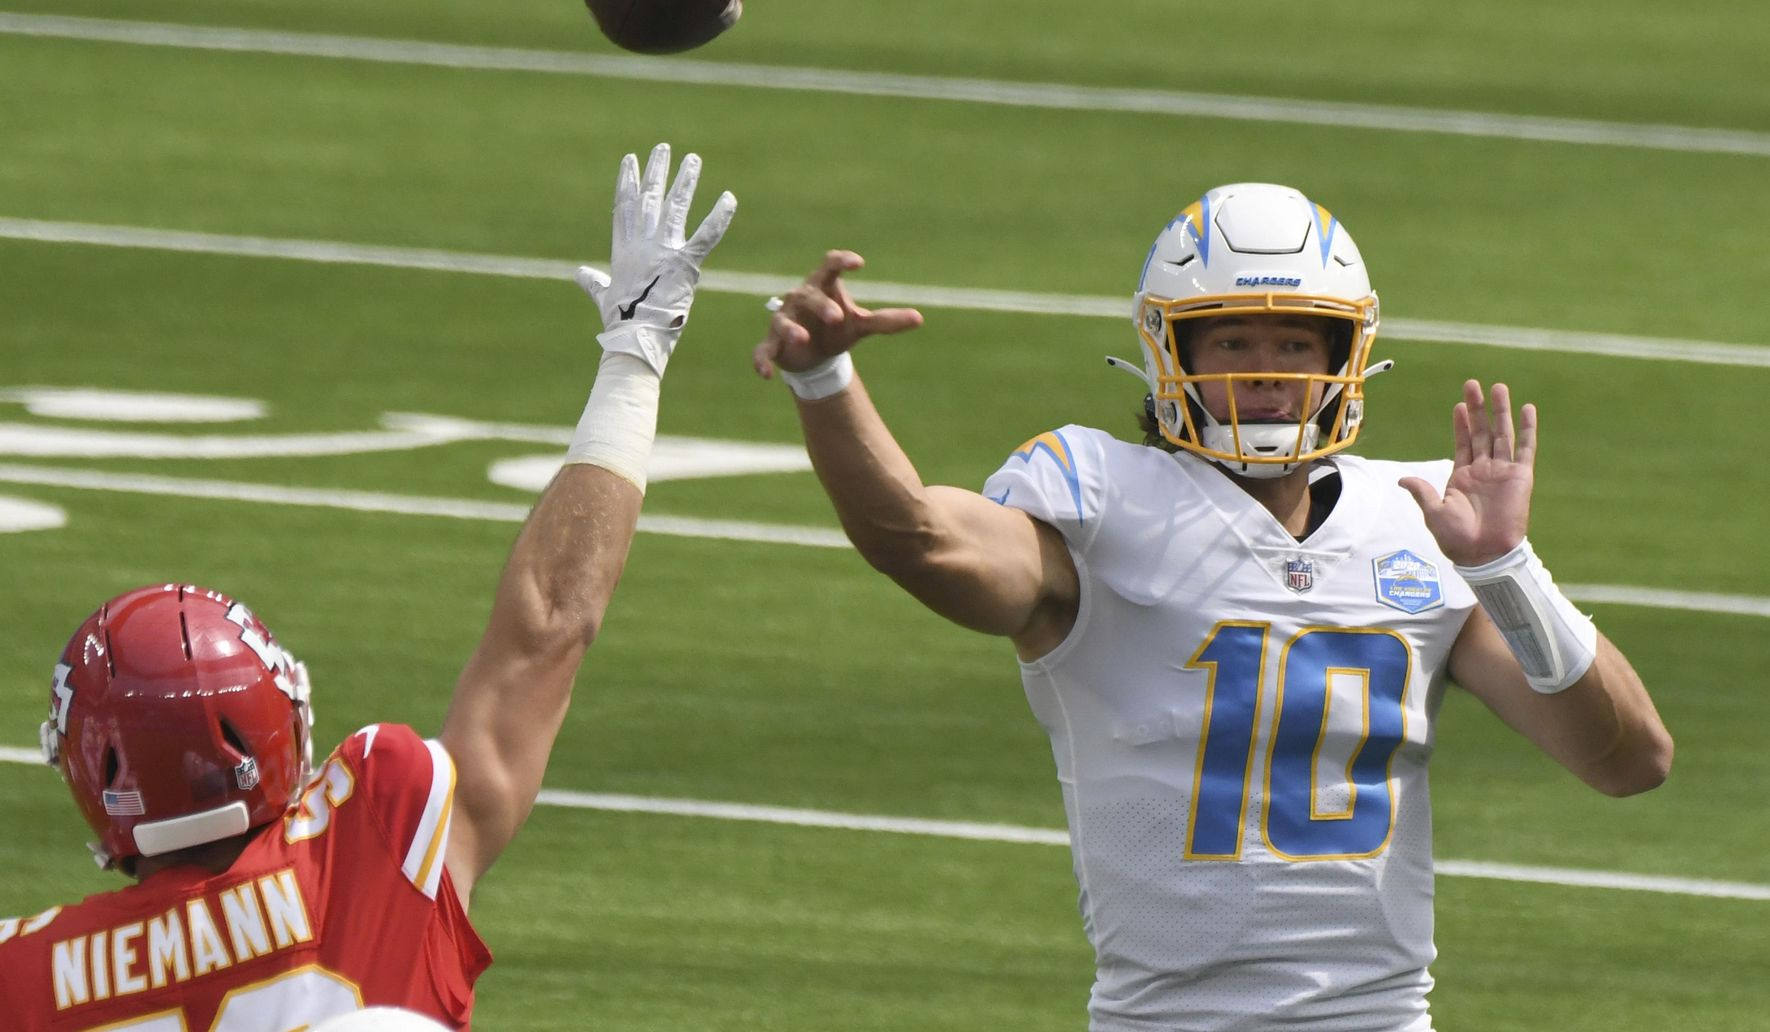 Chiefs_chargers_football_77230_c0-267-3356-2223_s1770x1032